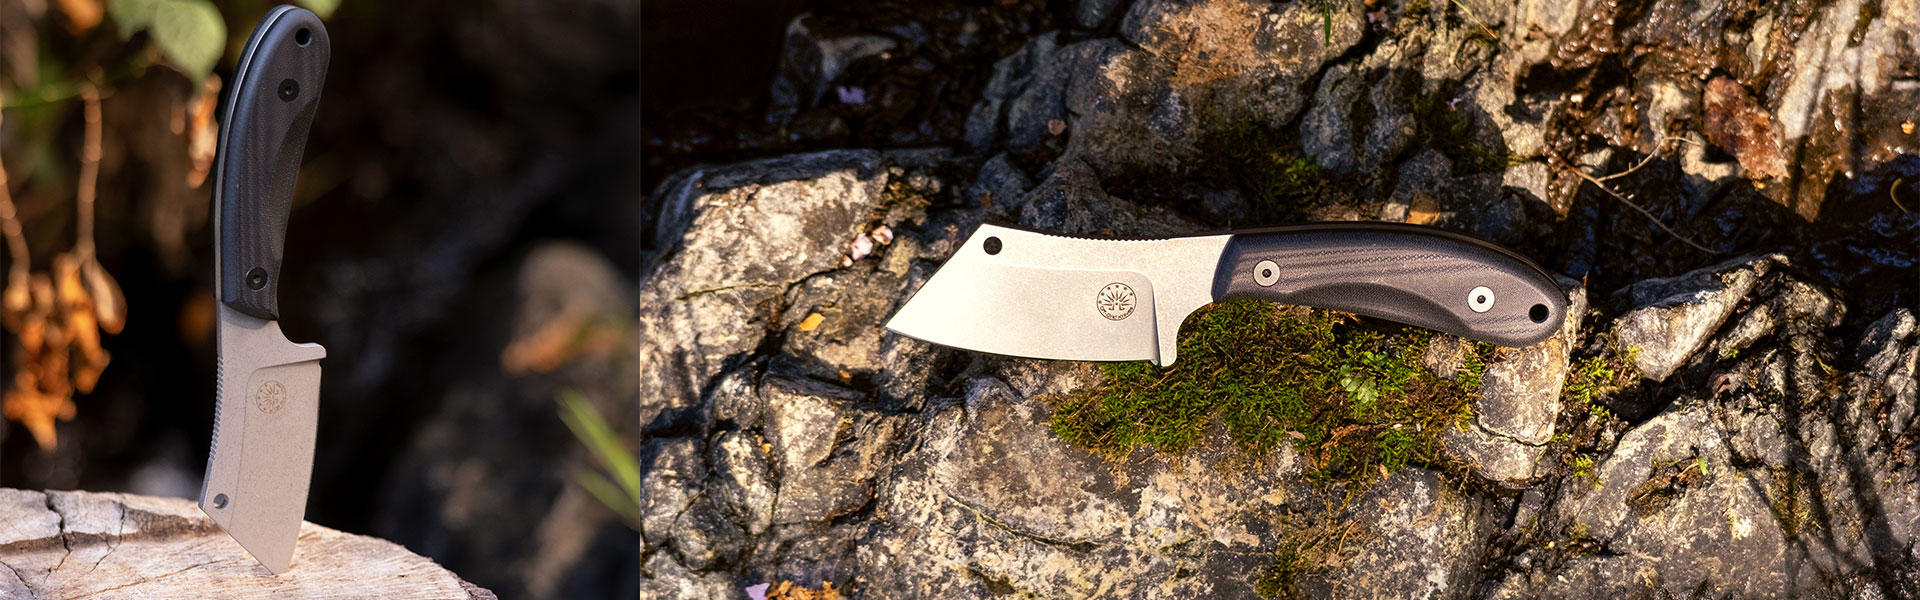 How to Choose the Right Tactical Cleaver Knife?